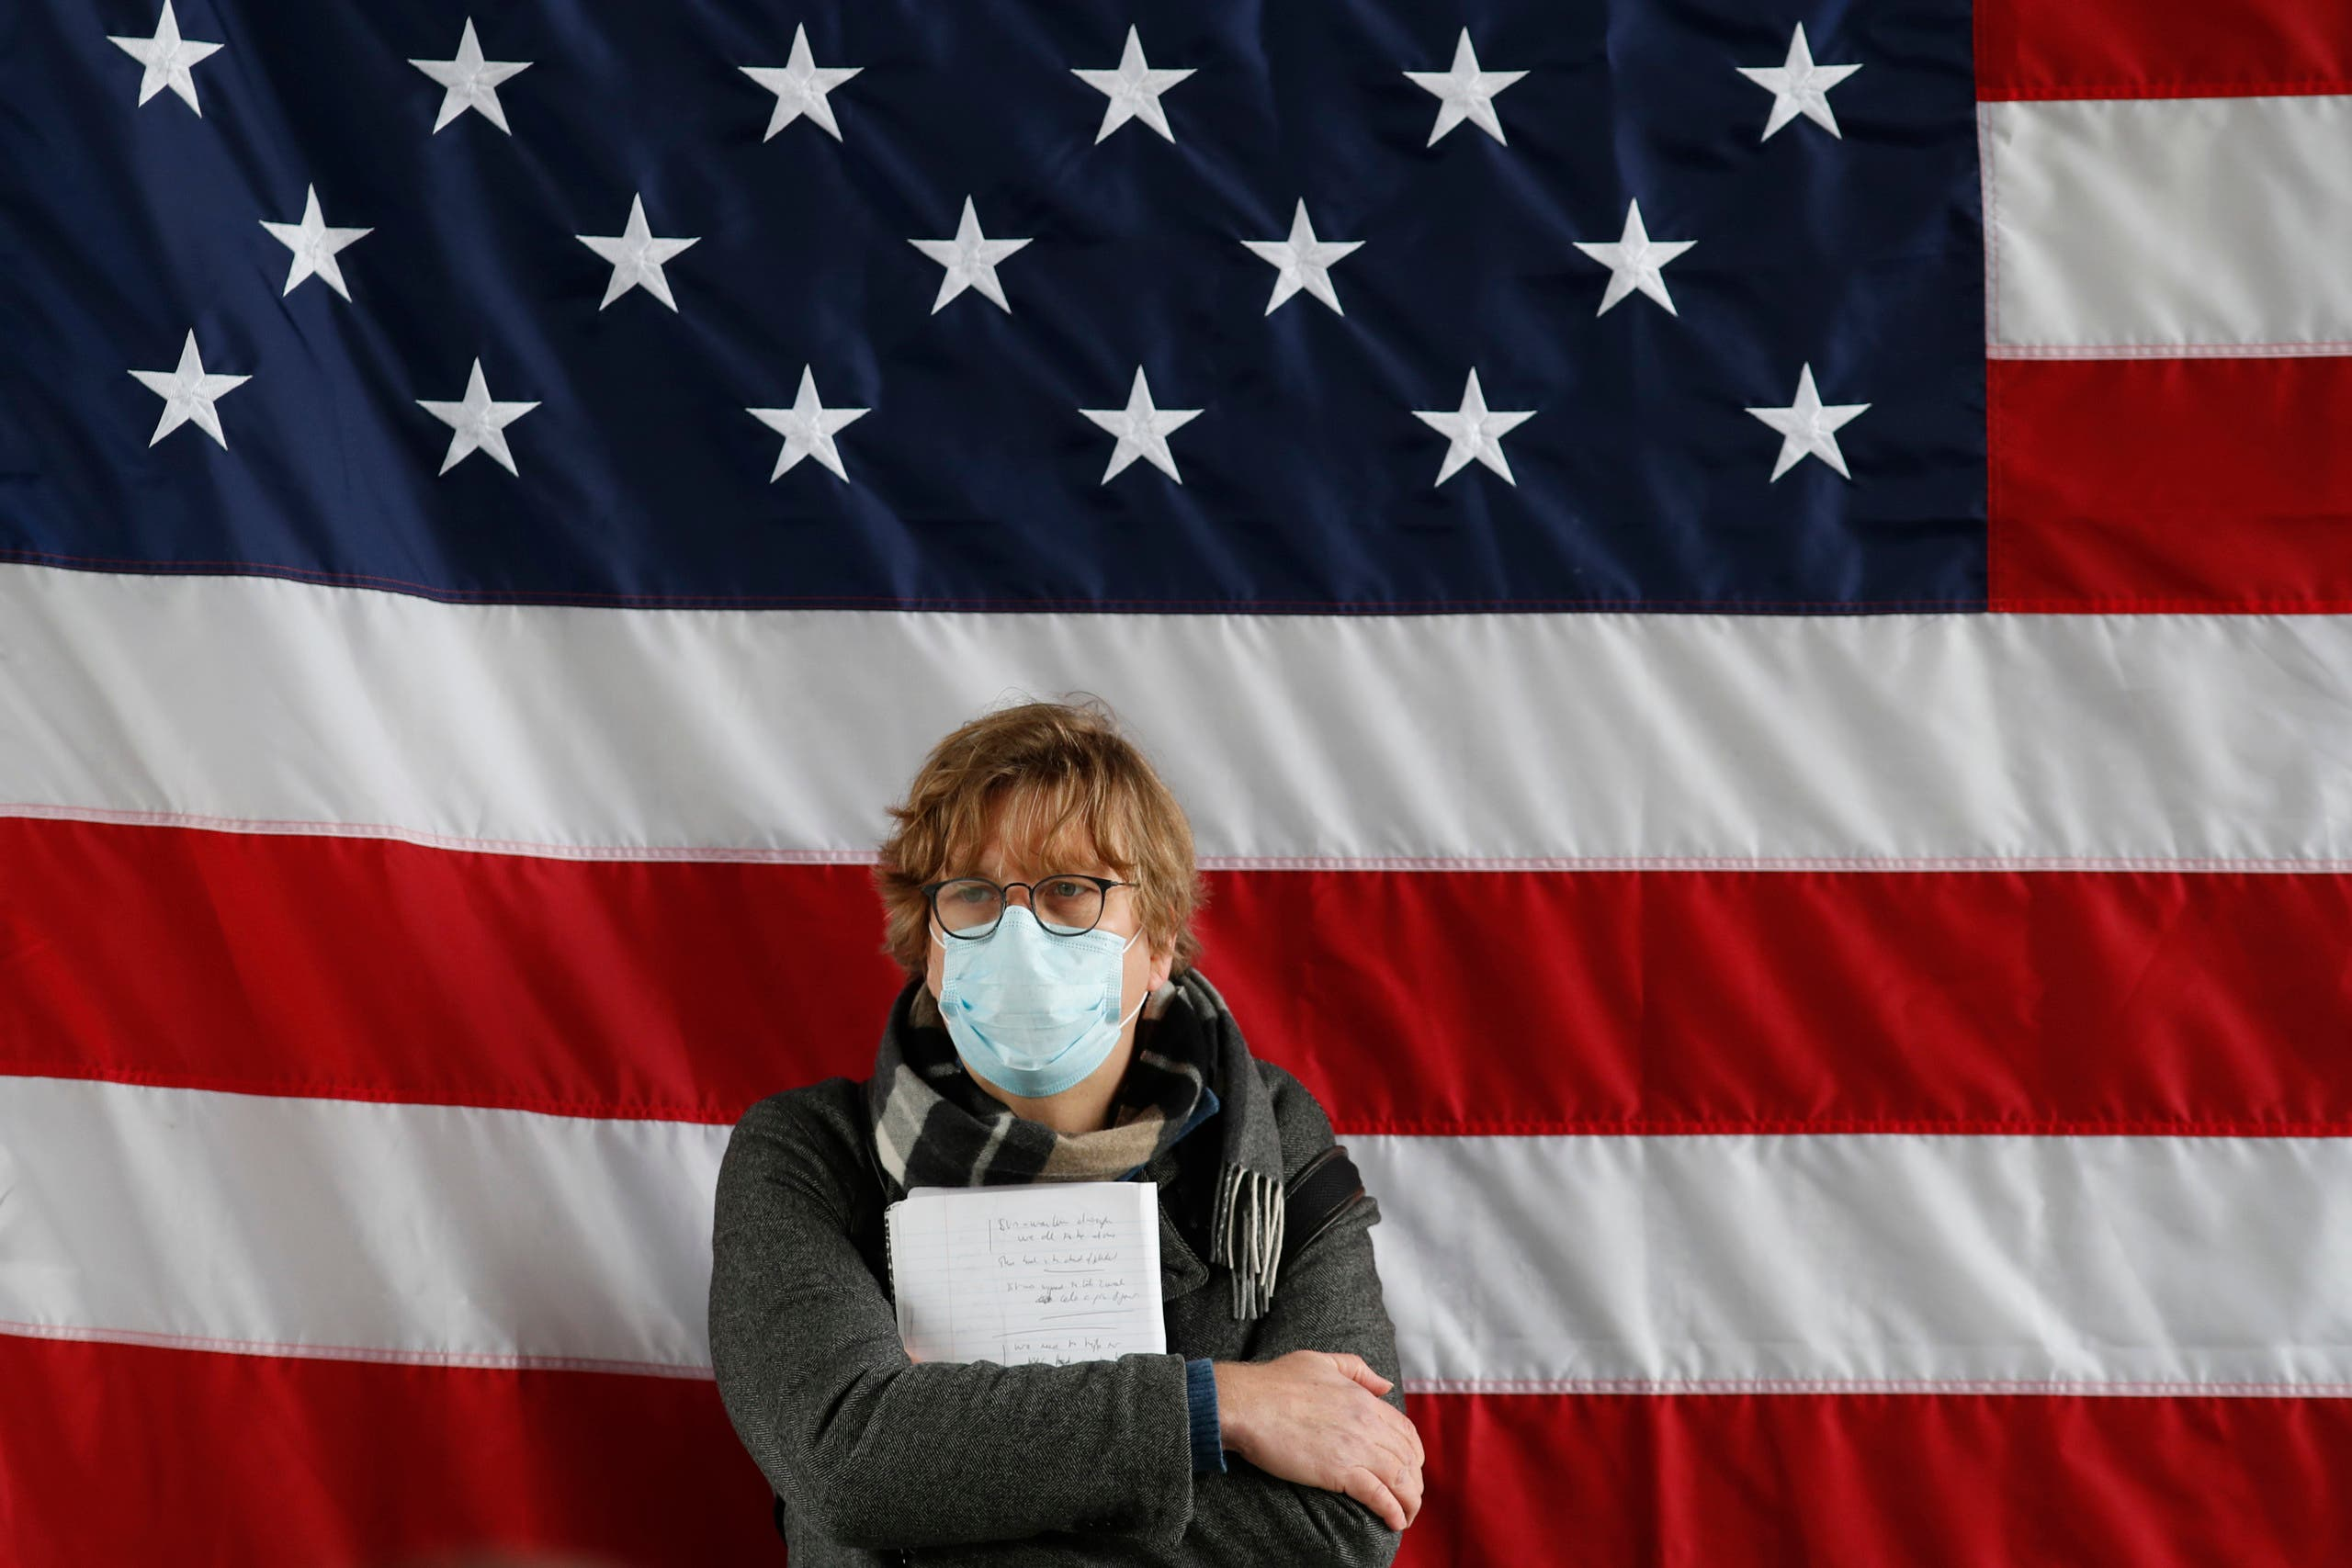 A reporter leans against the United States flag during a press briefing on March 30, 2020, in New York. (AP)